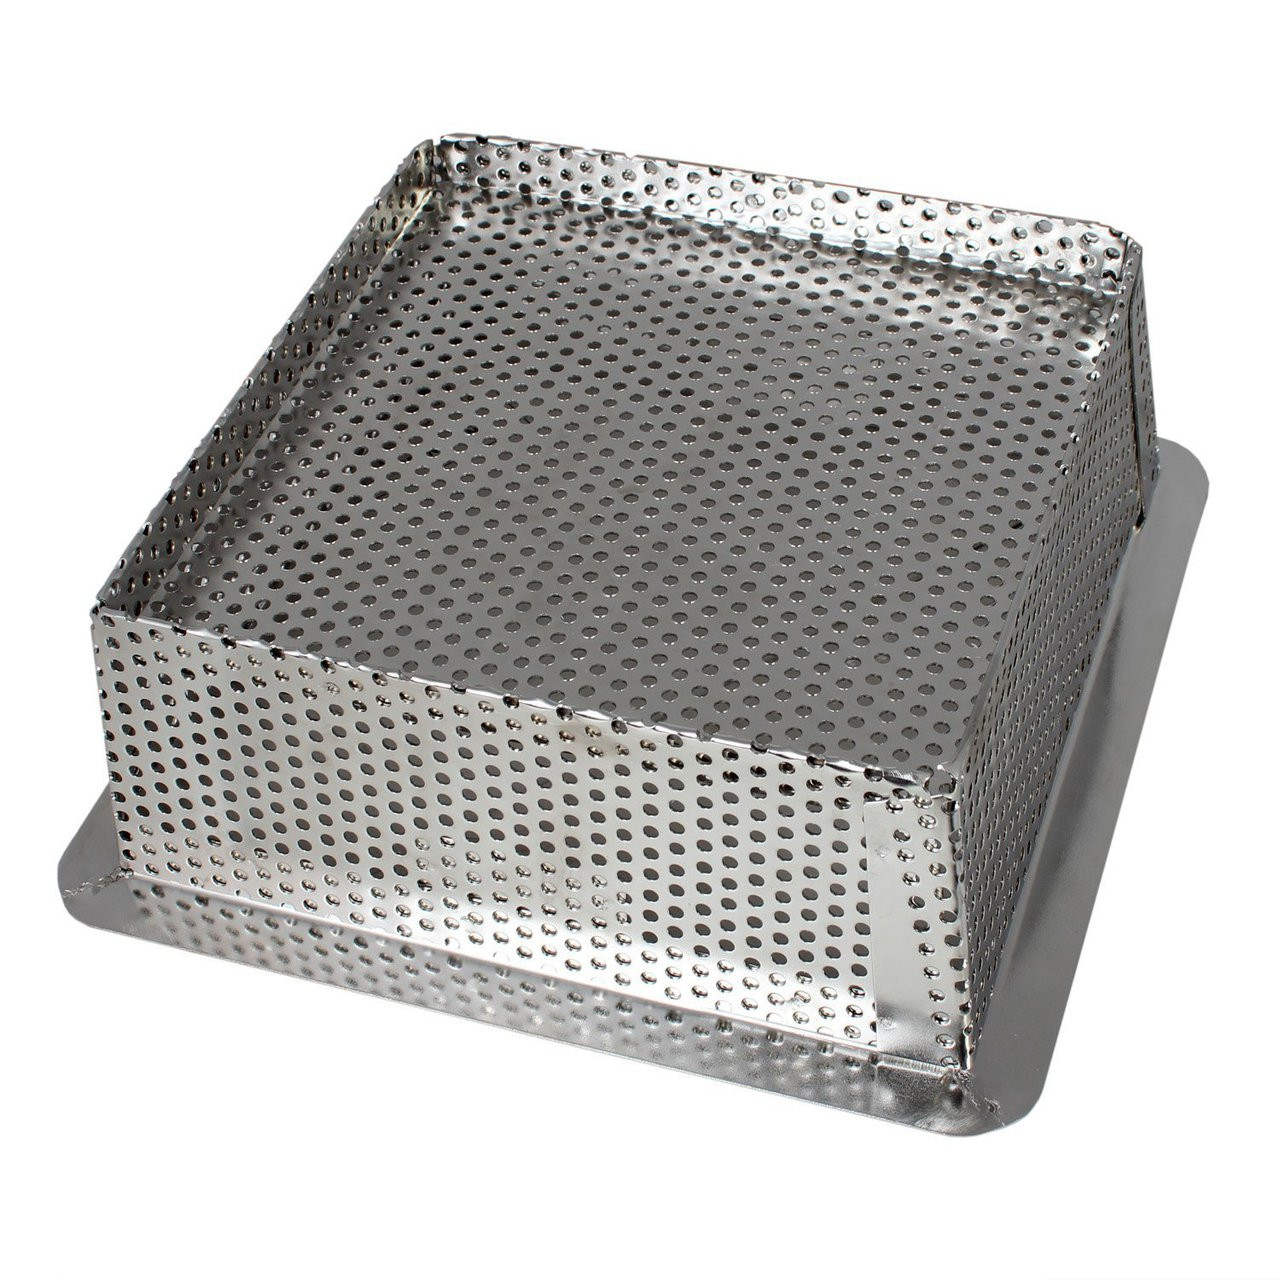 """Commercial Kitchen Floor Drains: 8.5"""" Stainless Steel Perforated Drain Bucket"""